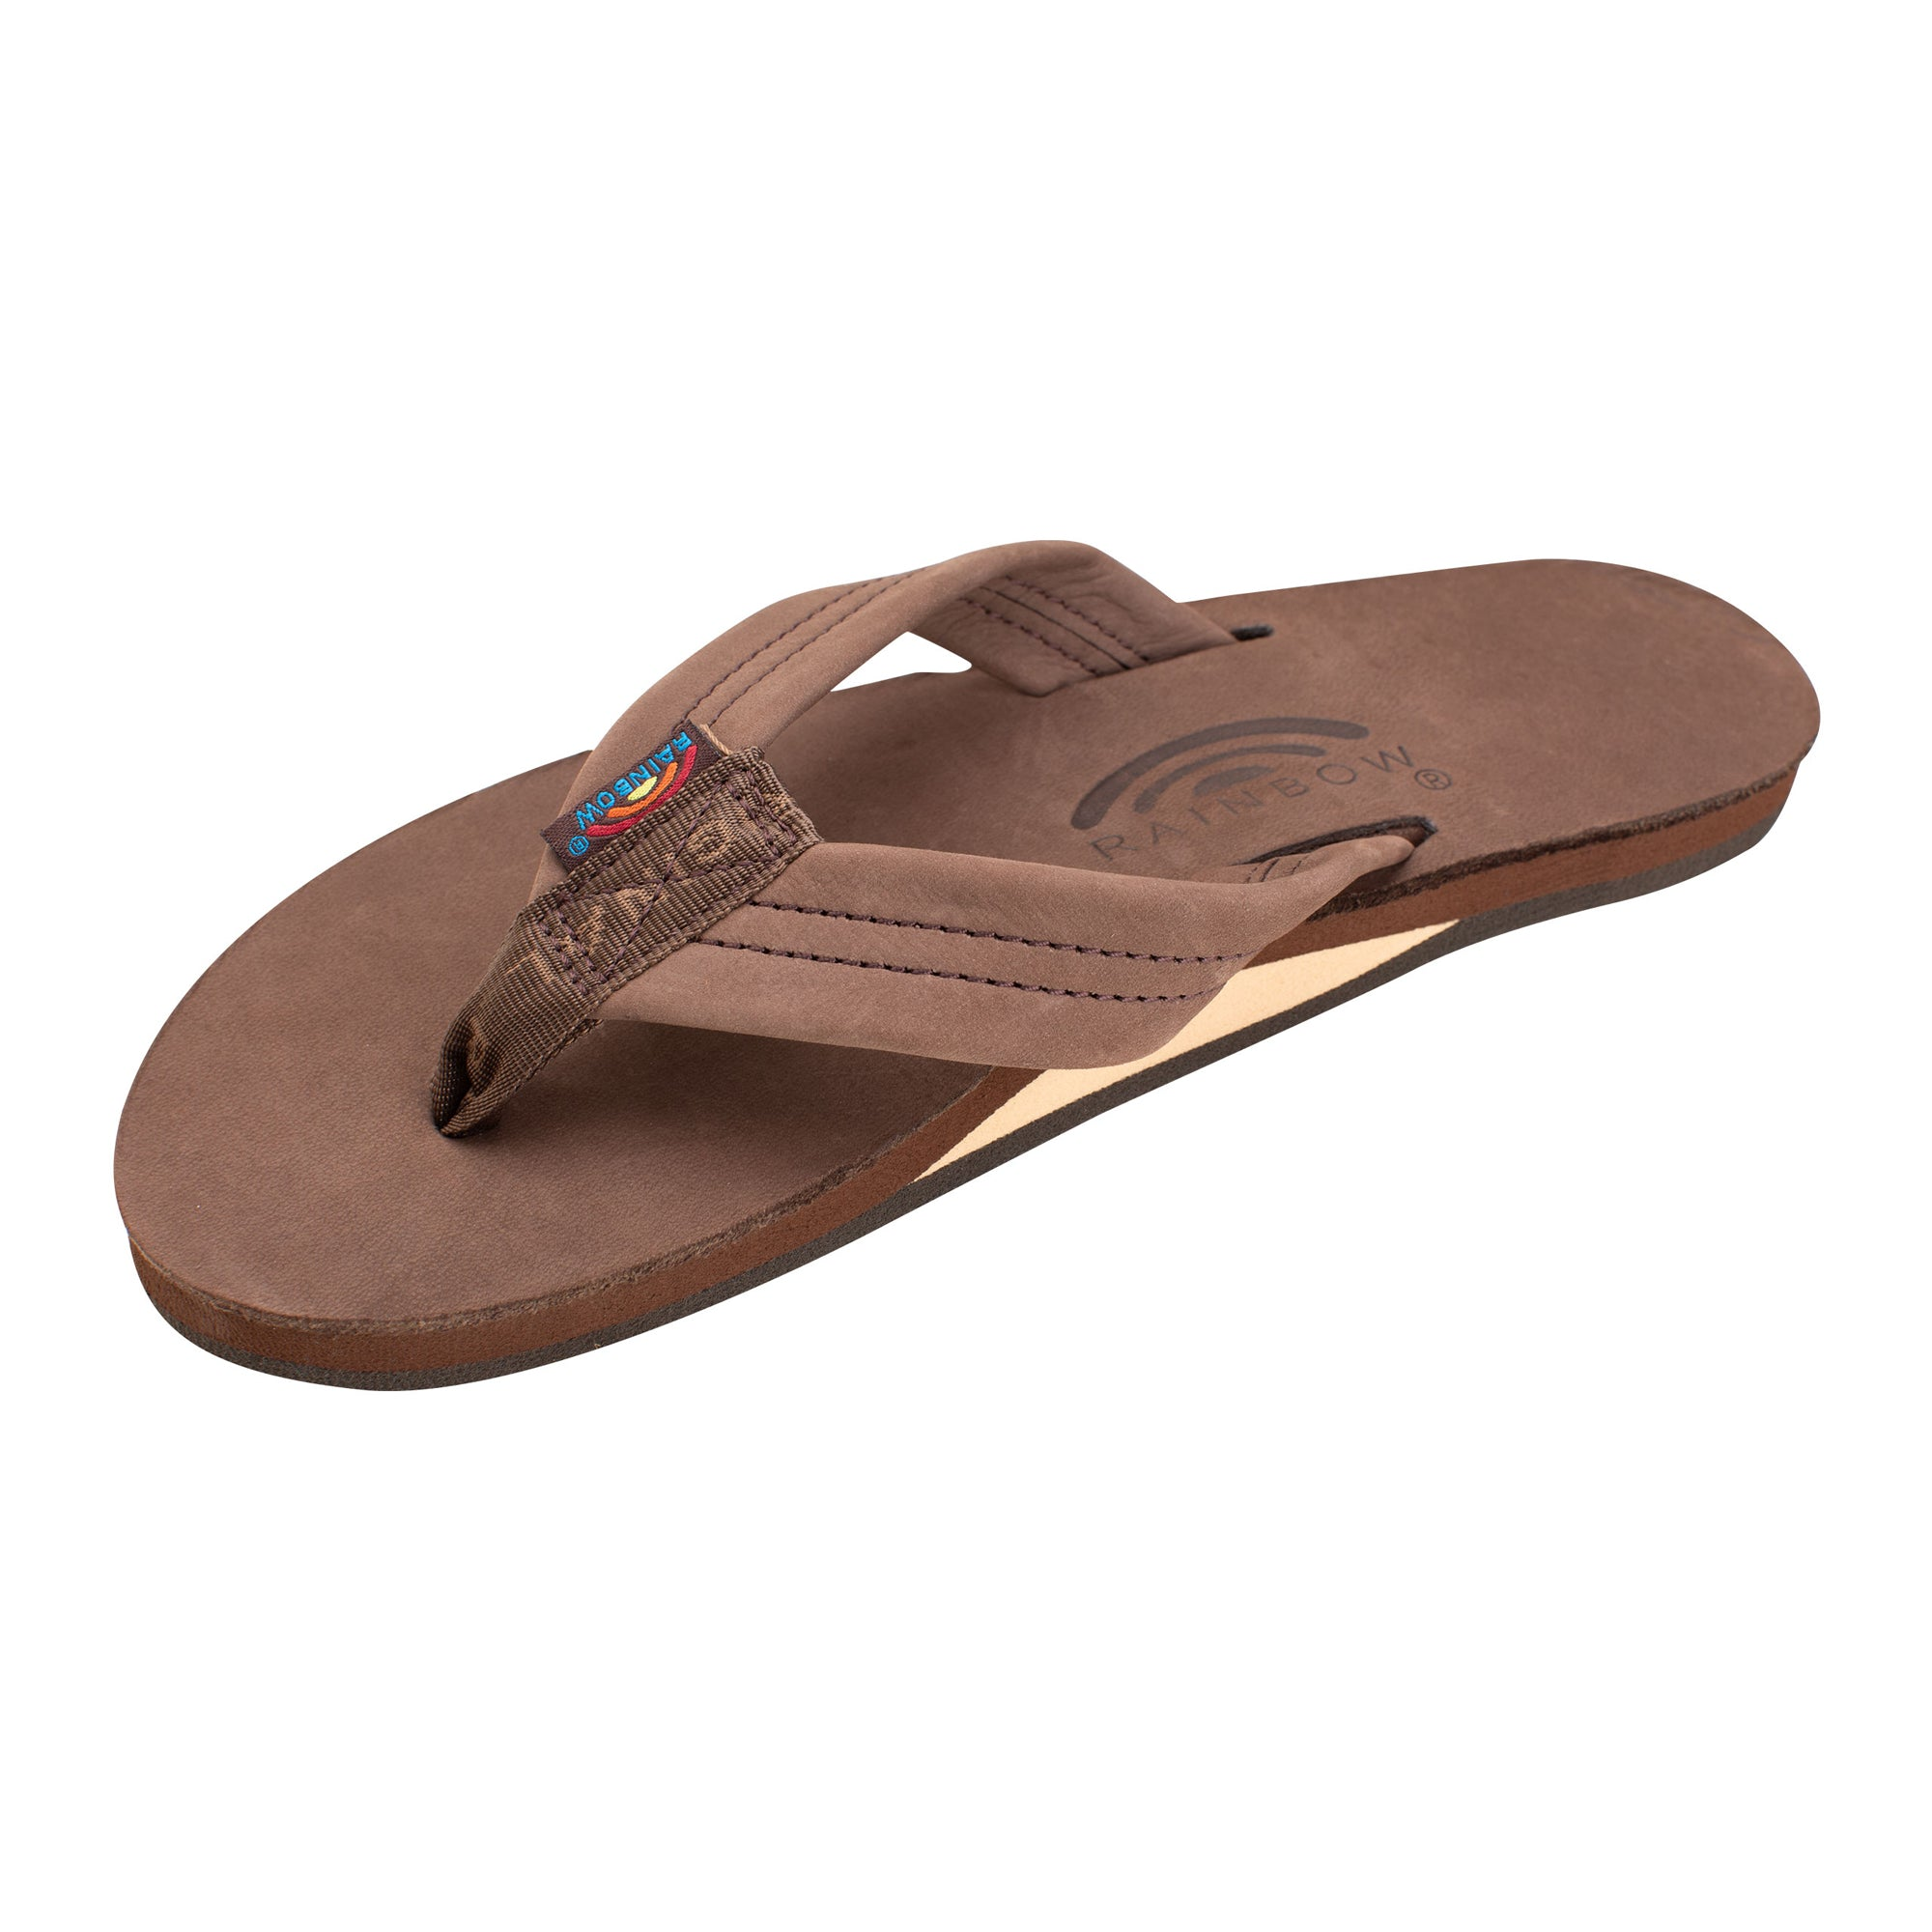 Rainbow Single Premier Leather Women's Sandals